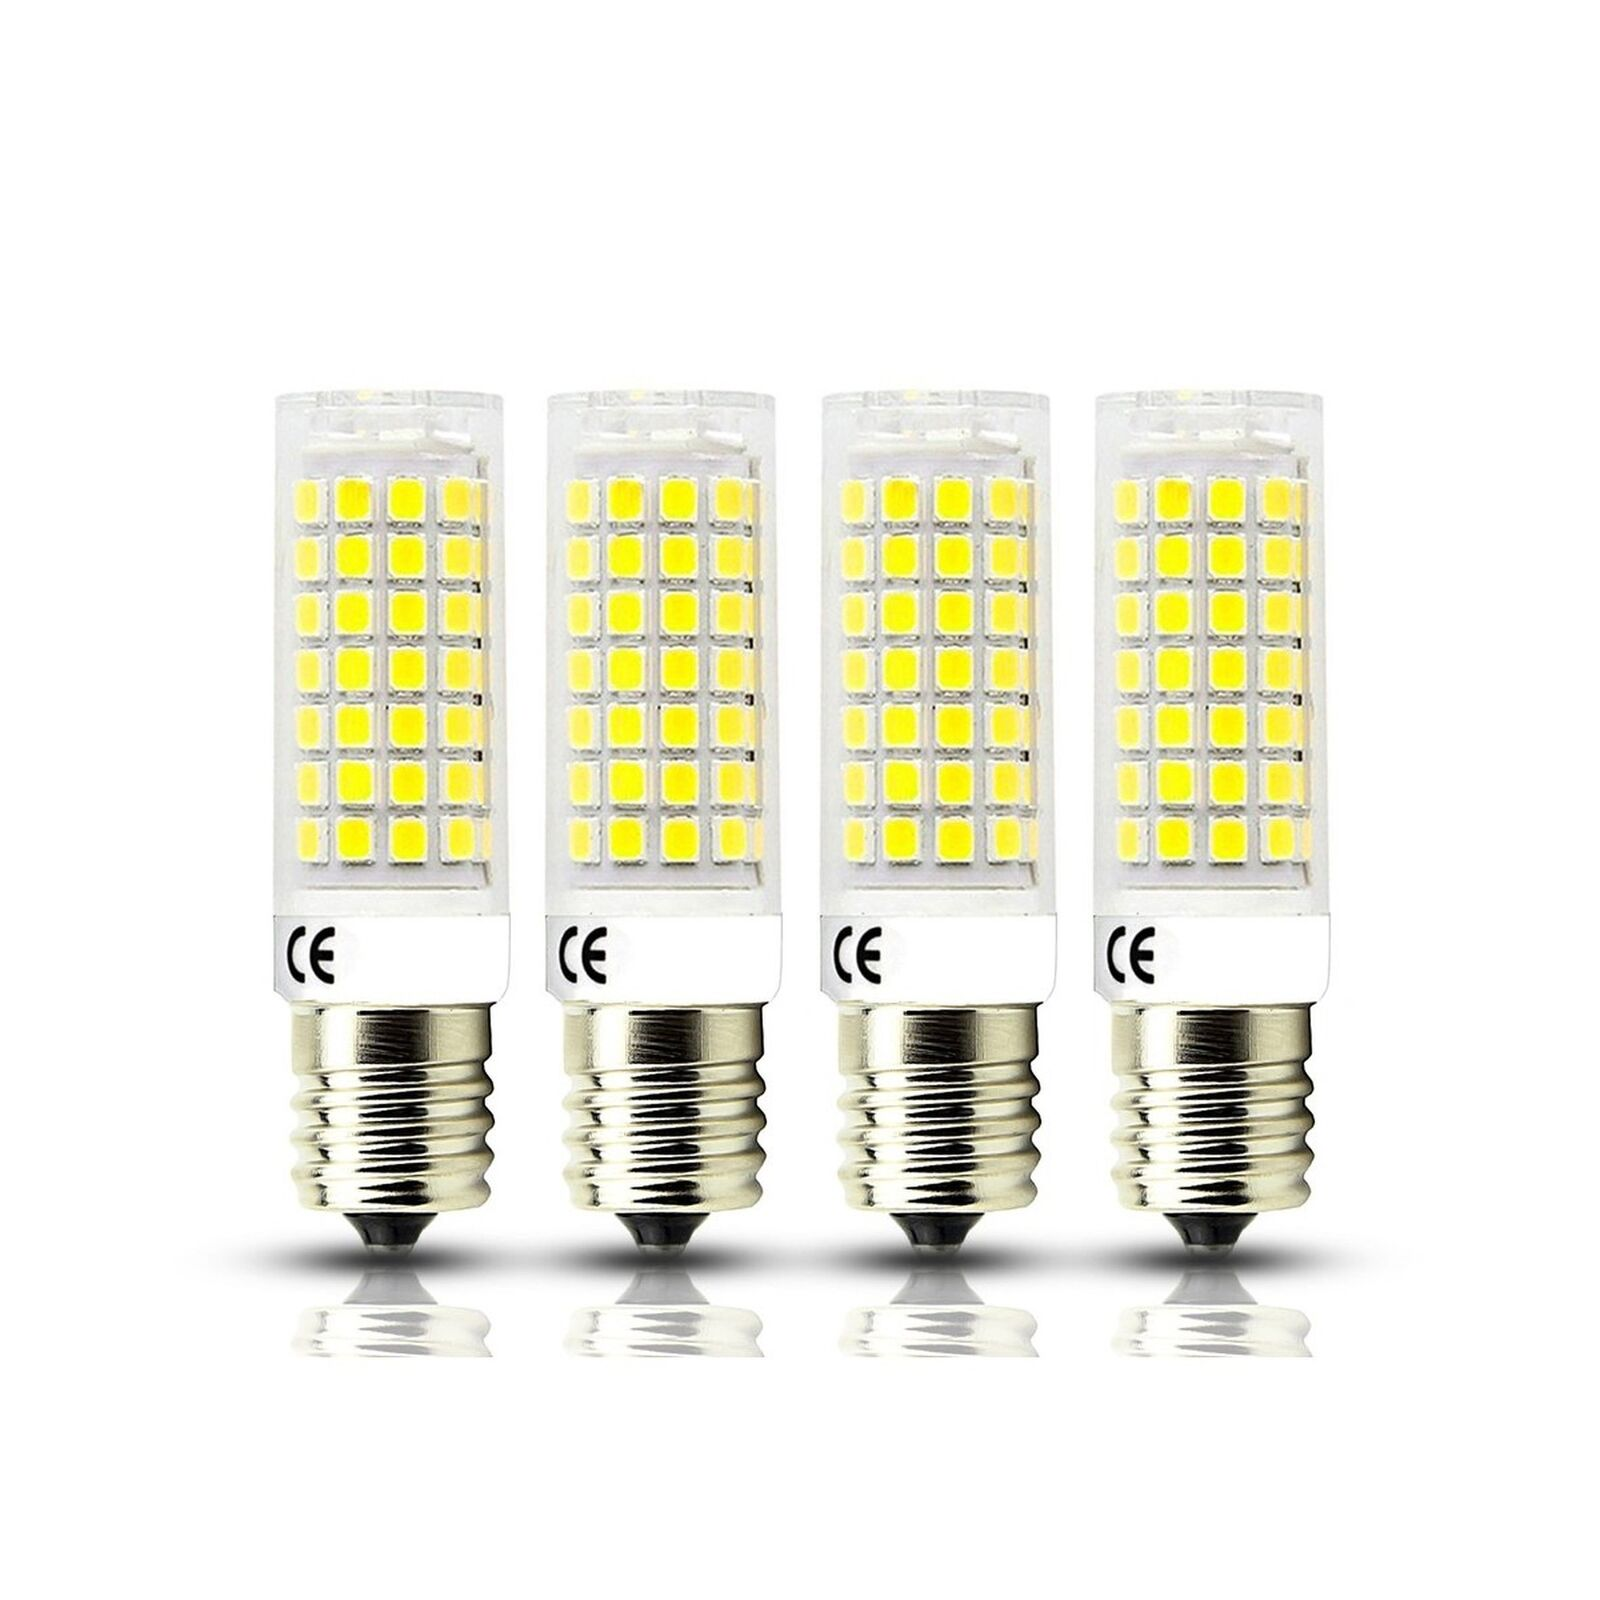 E17 LED Bulb Dimmable Seealle 4W Daylight White 5000K 40W Halogen Microwave Ove